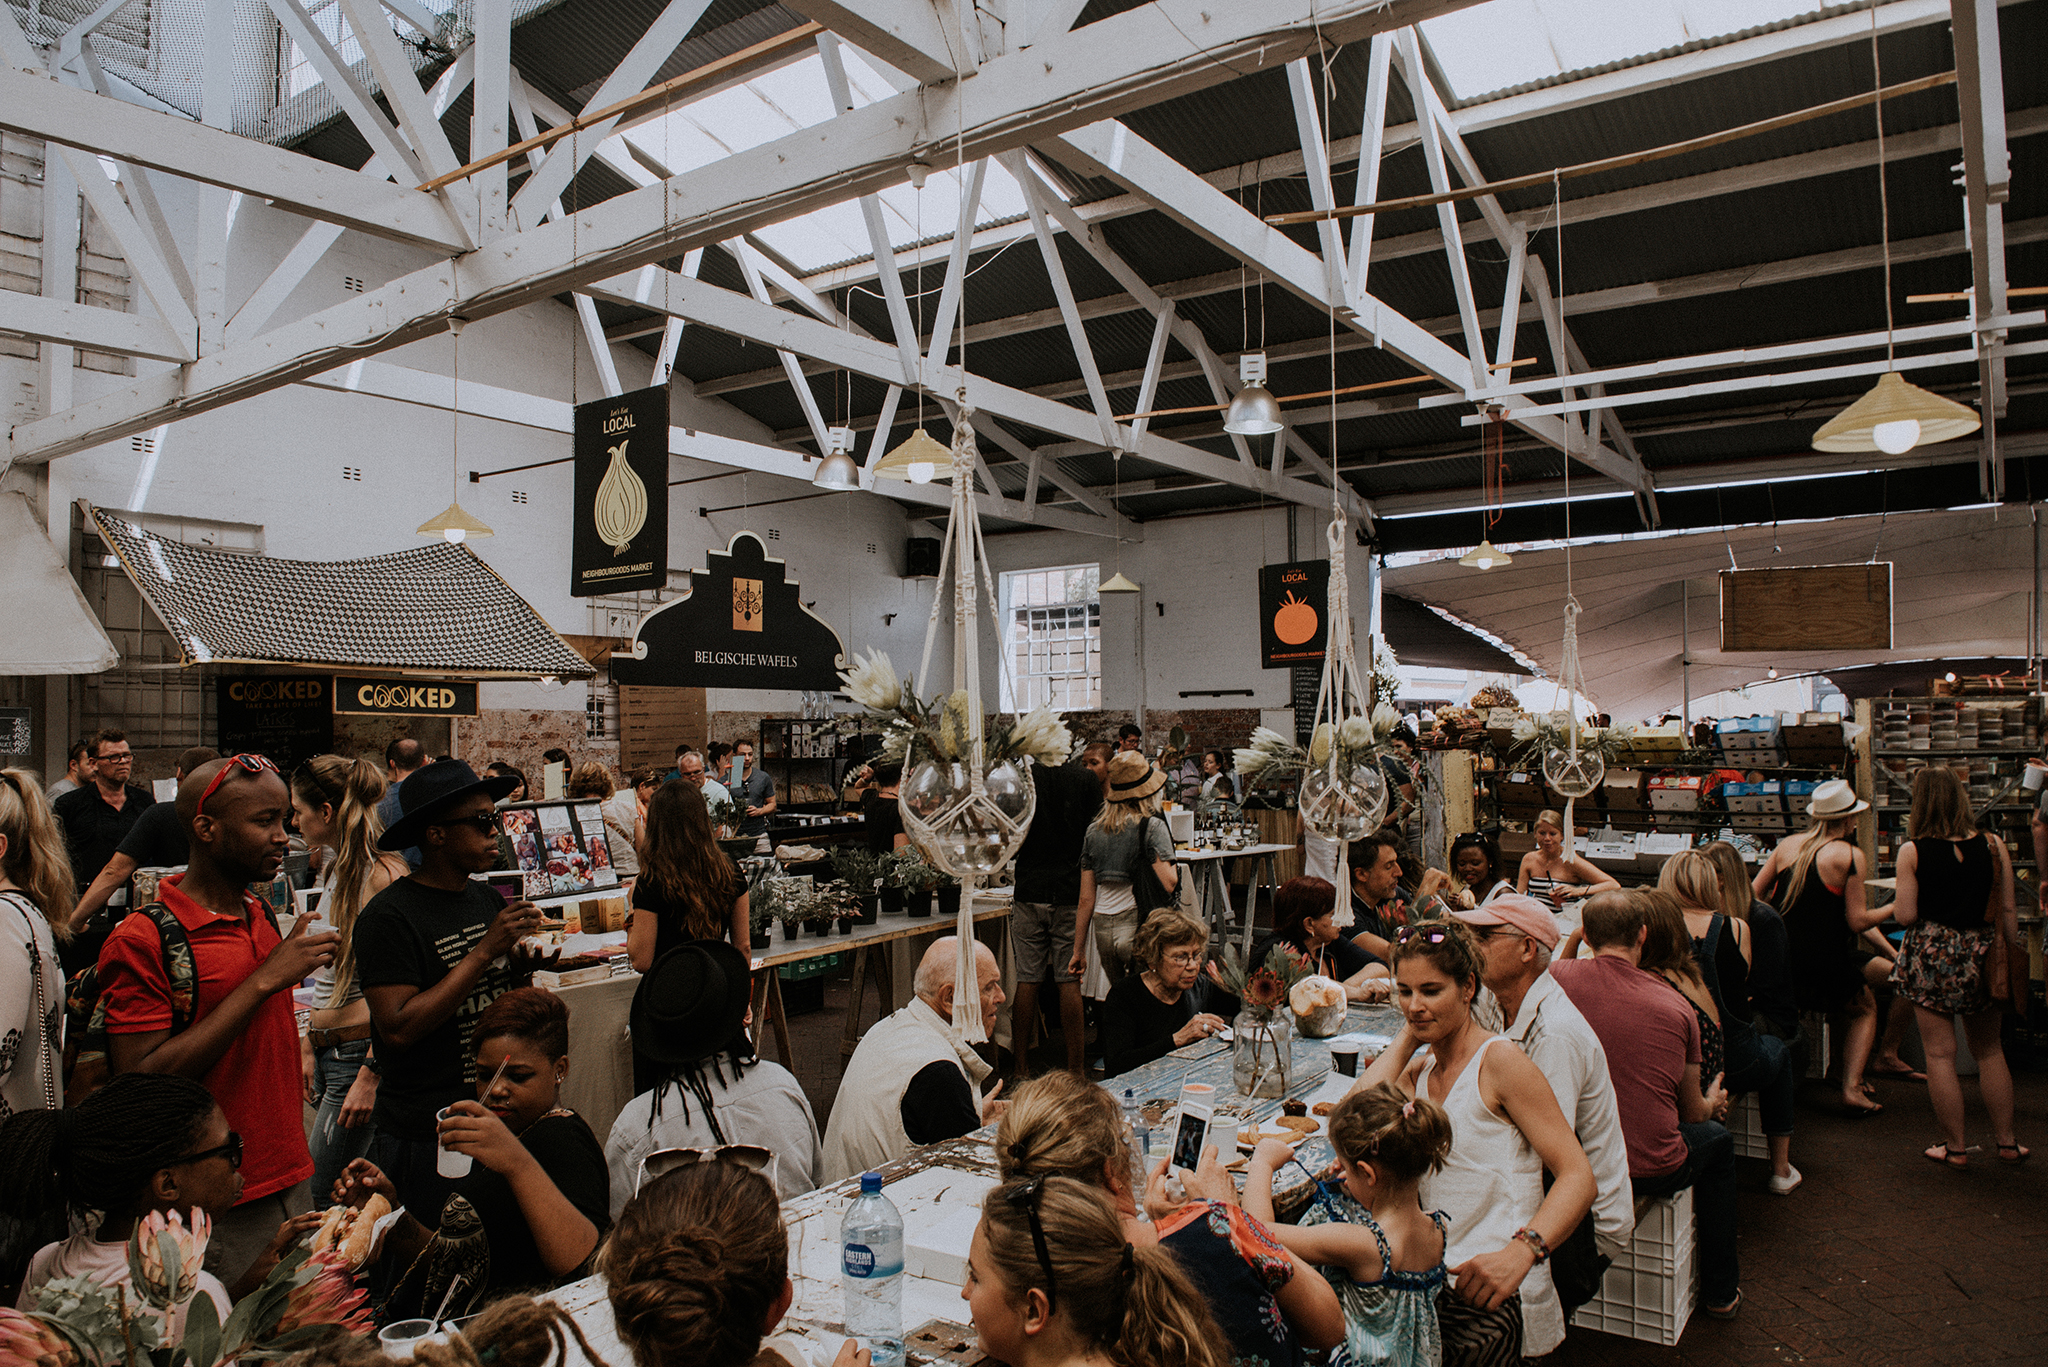 Food market Old Biscuit Mill by Polina Ilieva Photography